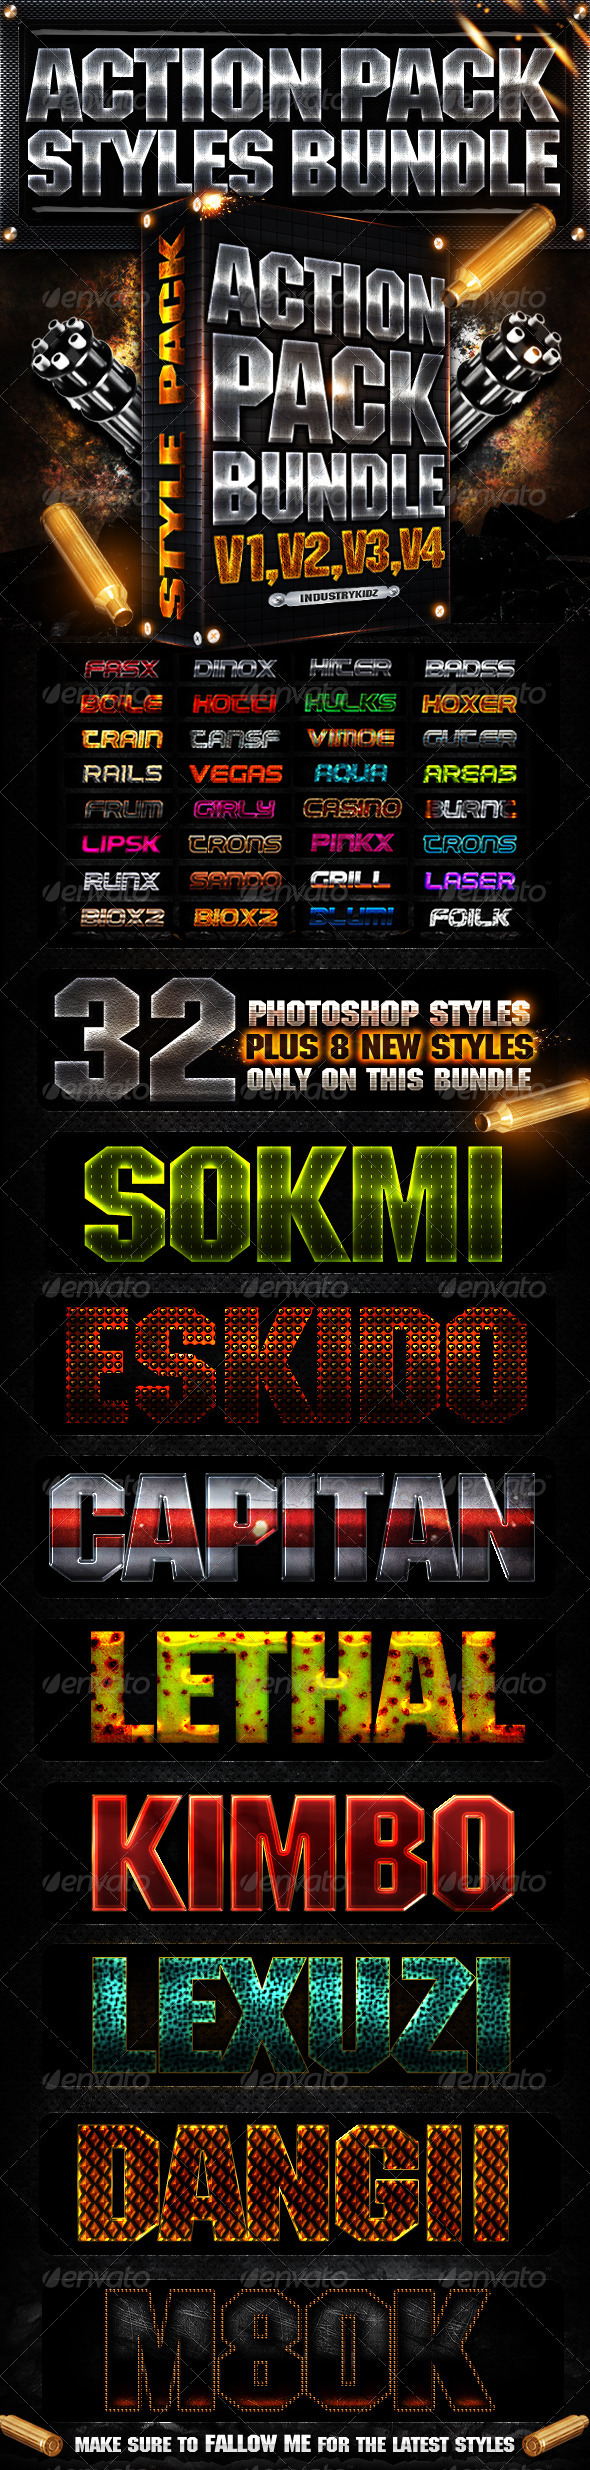 Action Pack Photoshop Style Bundle - Text Effects Styles